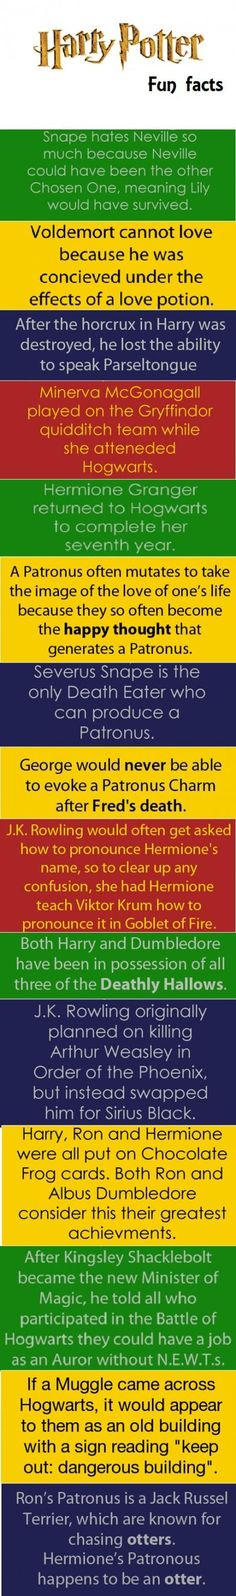 Harry Potter facts you probably didn't know.